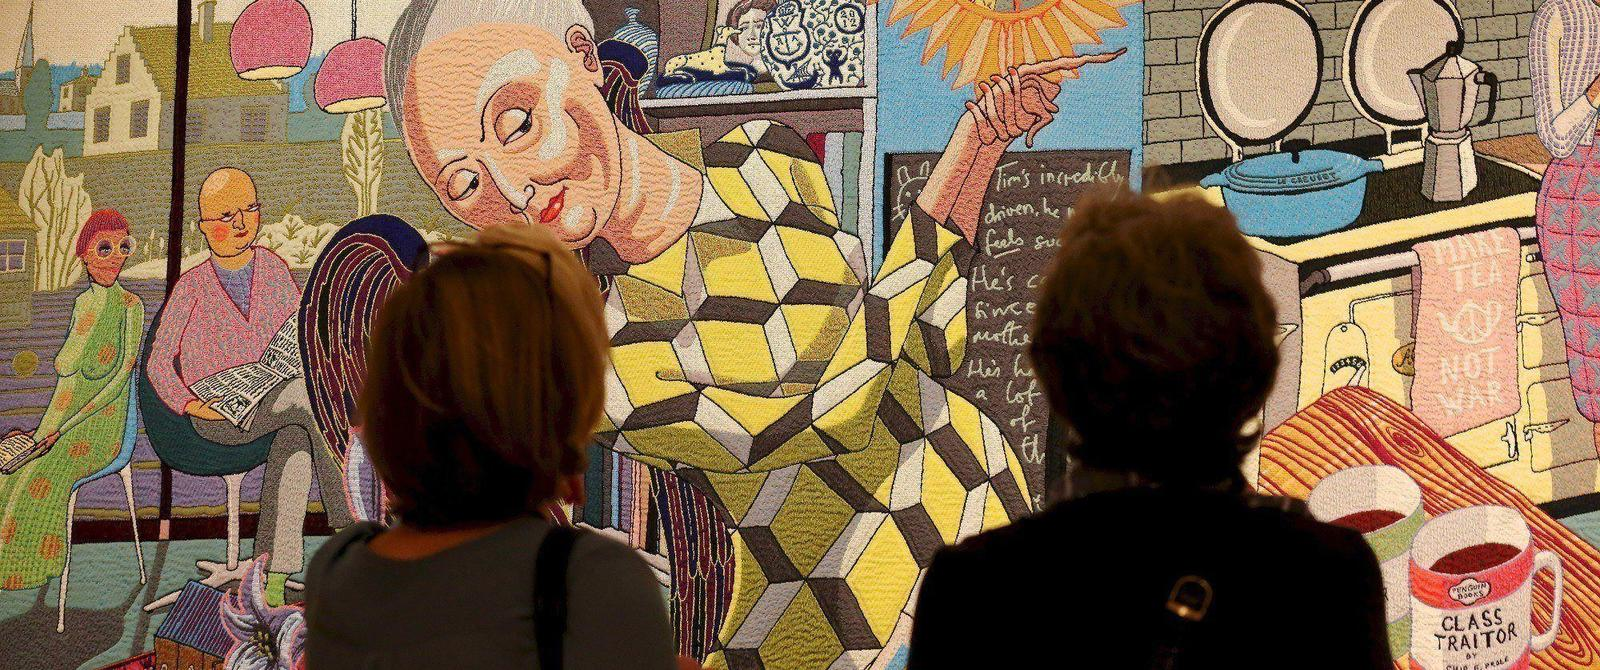 Image: Visitors viewing The Vanity of Small Differences, Grayson Perry